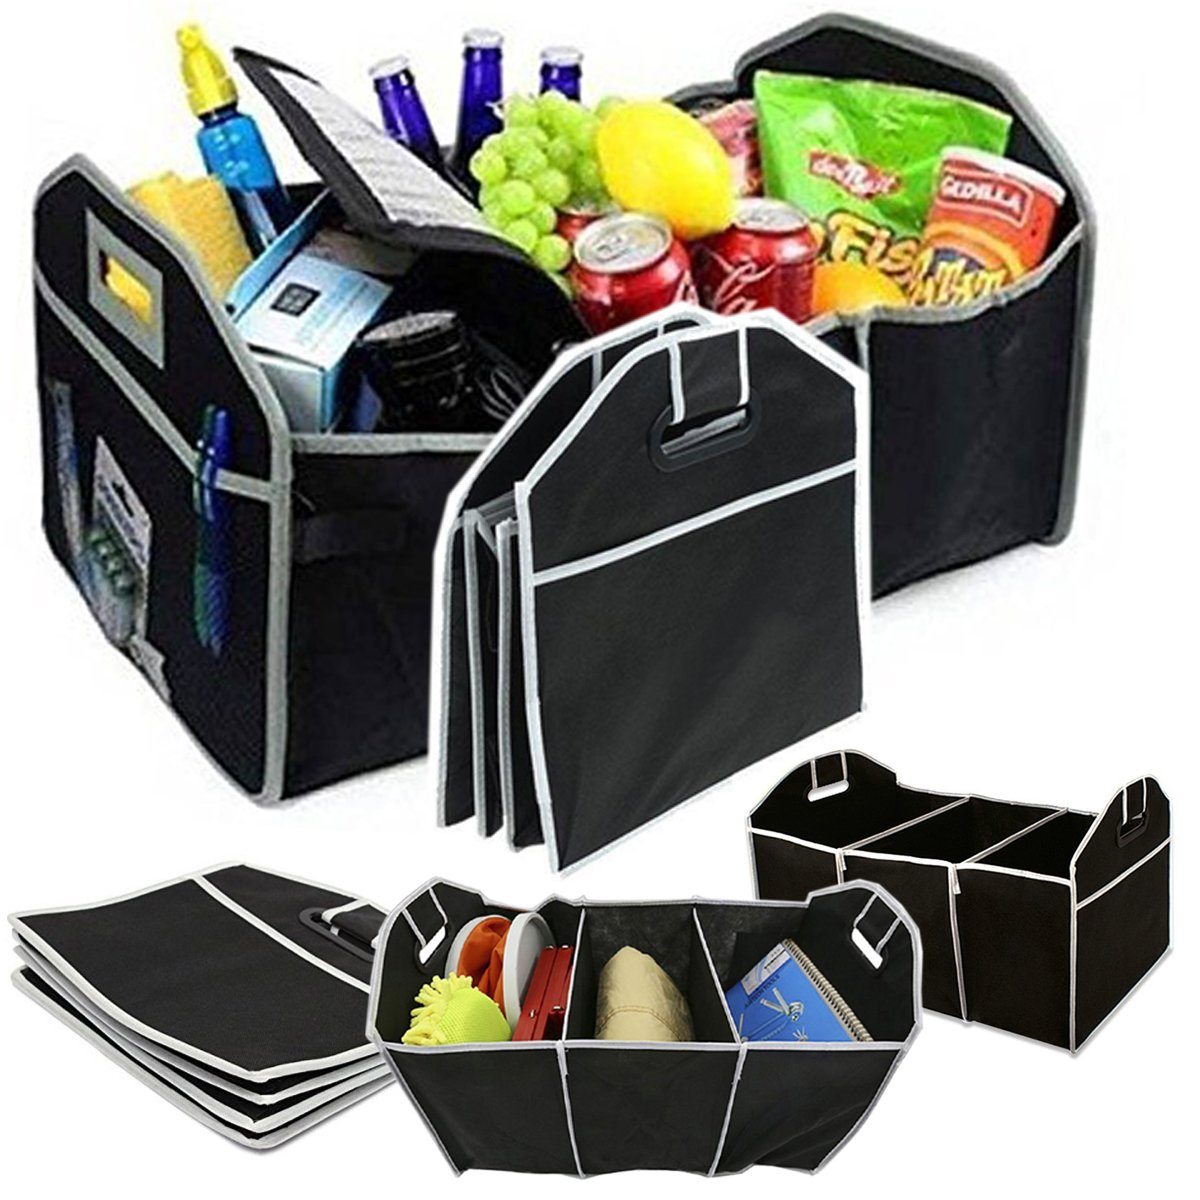 2 IN 1 HEAVY DUTY COLLAPSIBLE CAR BOOT ORGANISER FOLDABLE SHOPPING TIDY STORAGE